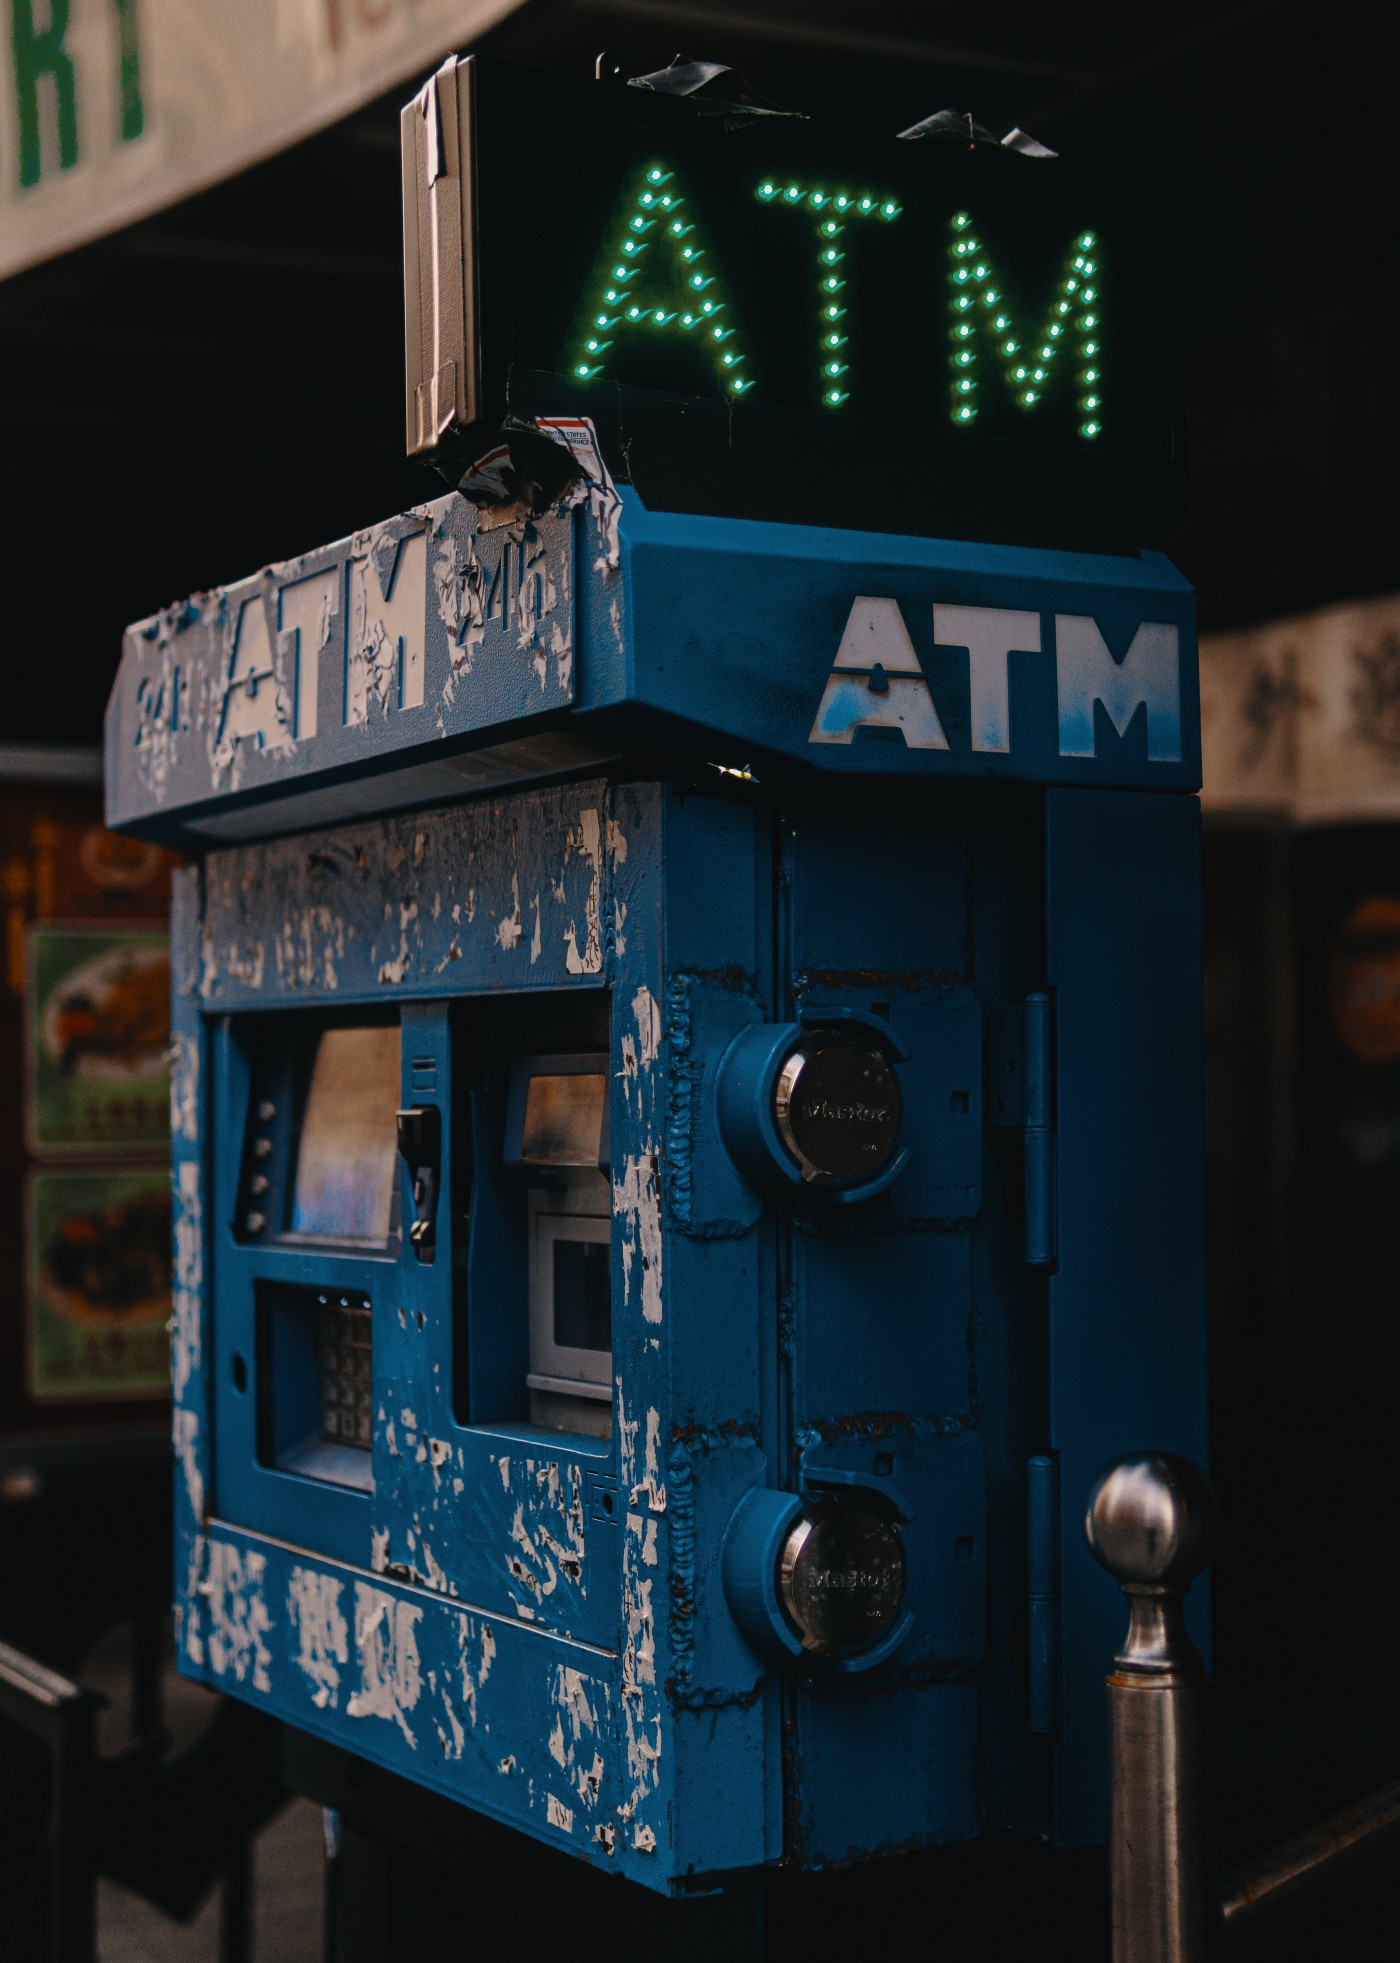 A picture of a worn out ATM machine. It's a symbol of where our nation is during the pandemic.